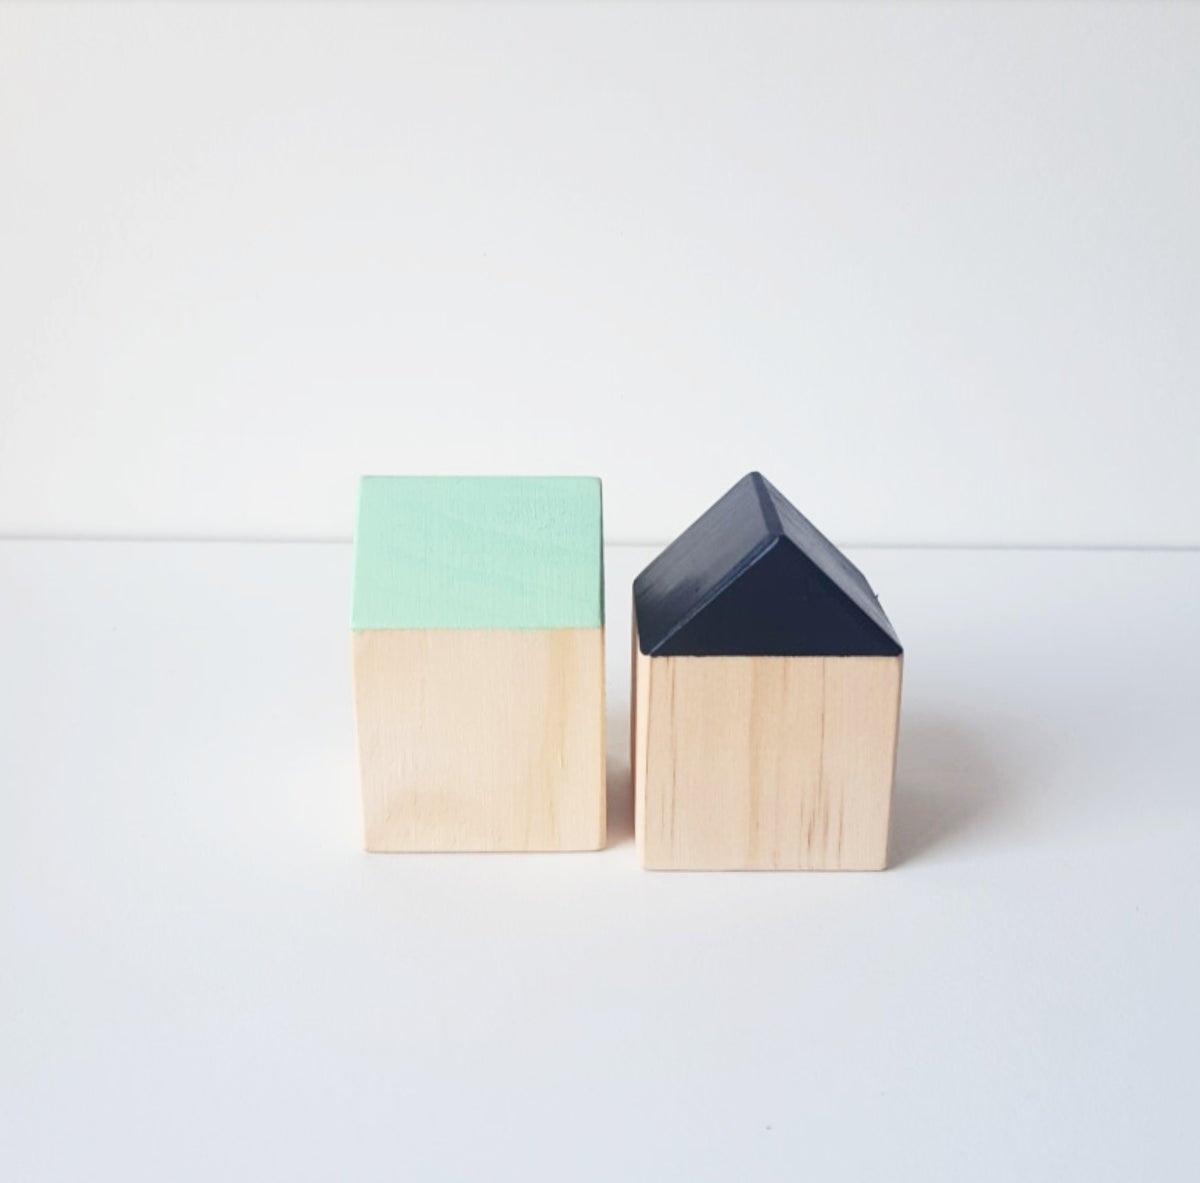 Image of Wooden Houses (Set of 2)